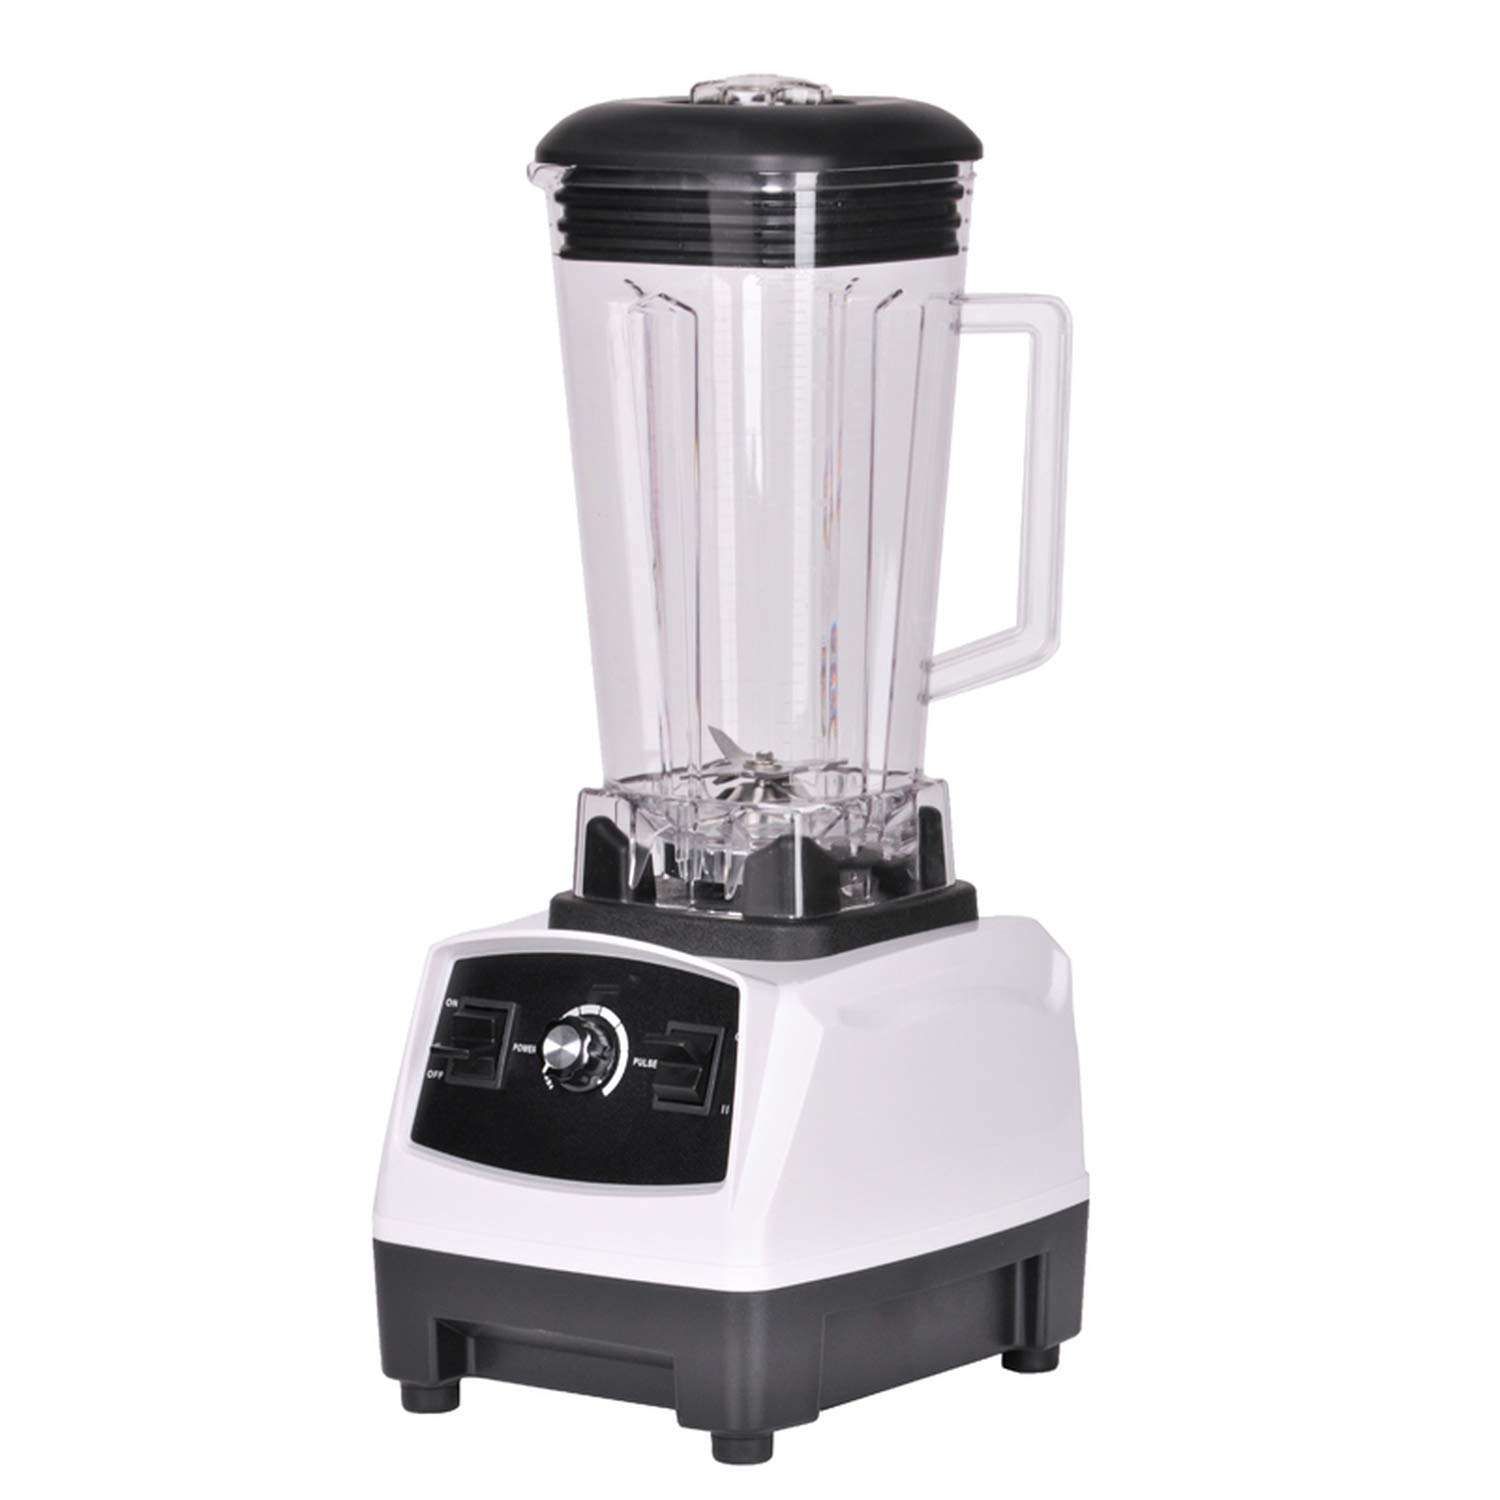 2200W Heavy Duty Professional Blender Mixer Juicer High Power Fruit Food Processor Ice Smoothie,WHITE,UK Plug